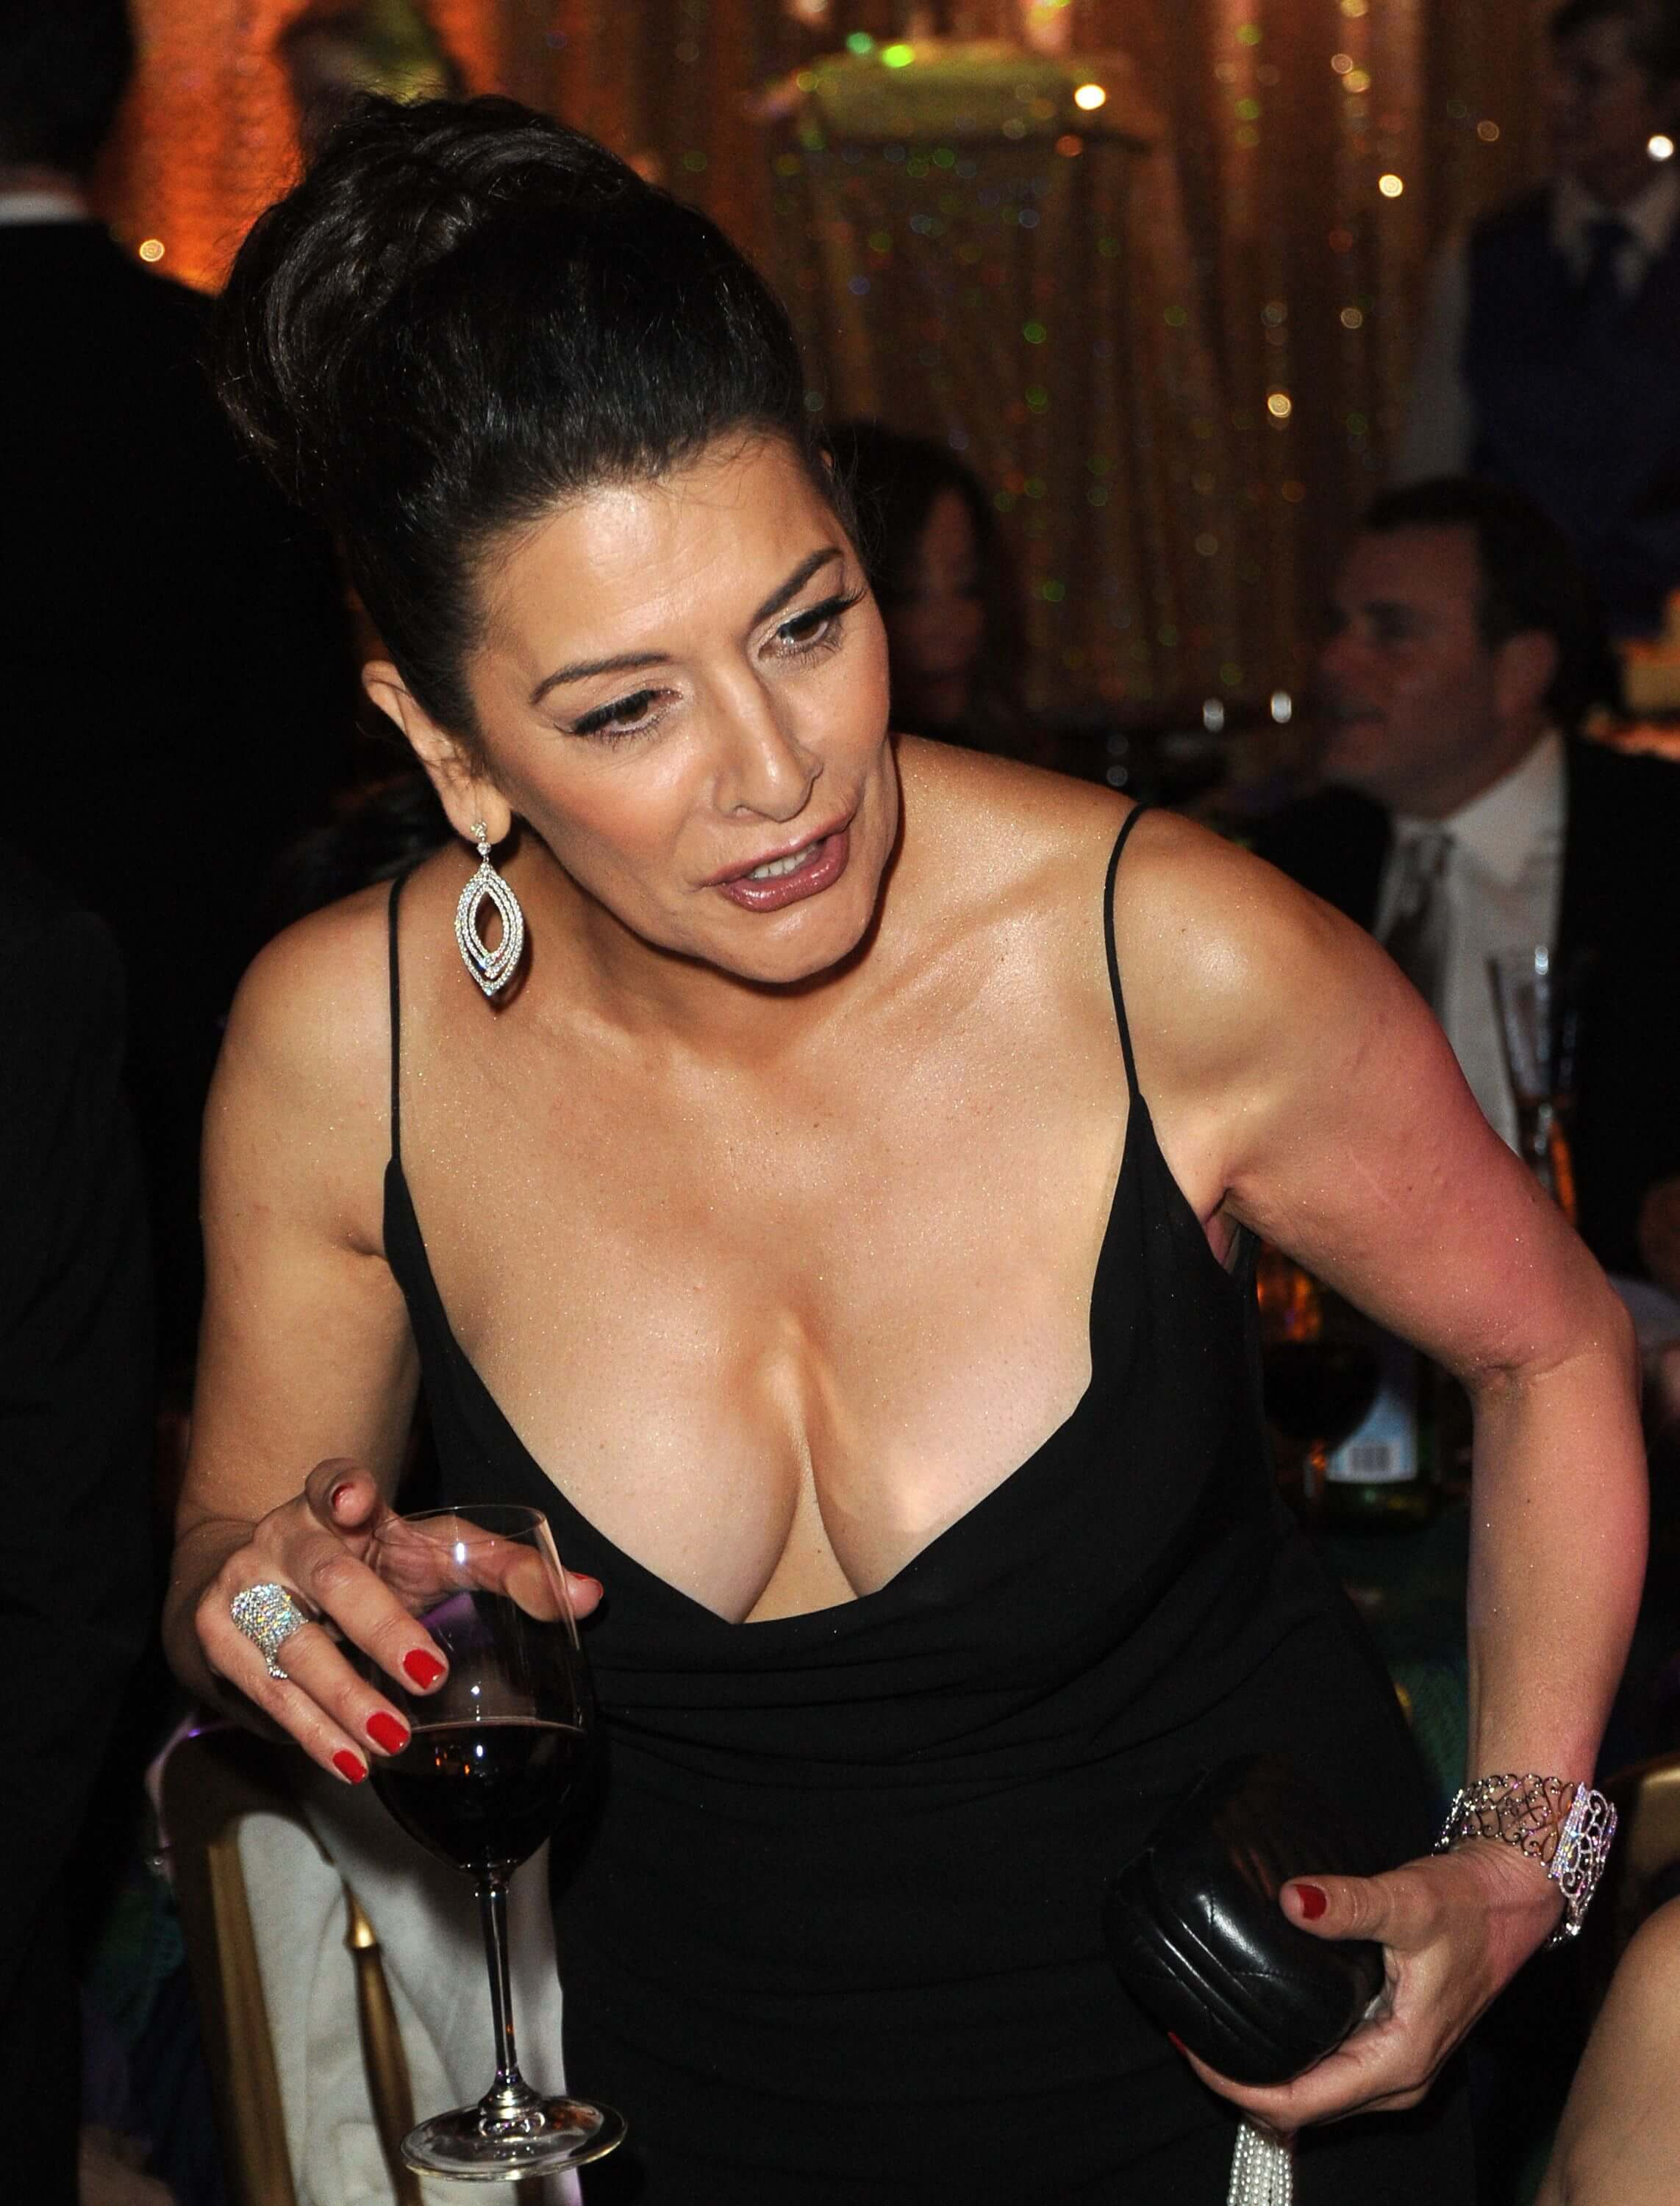 Marina Sirtis cleavage pictures